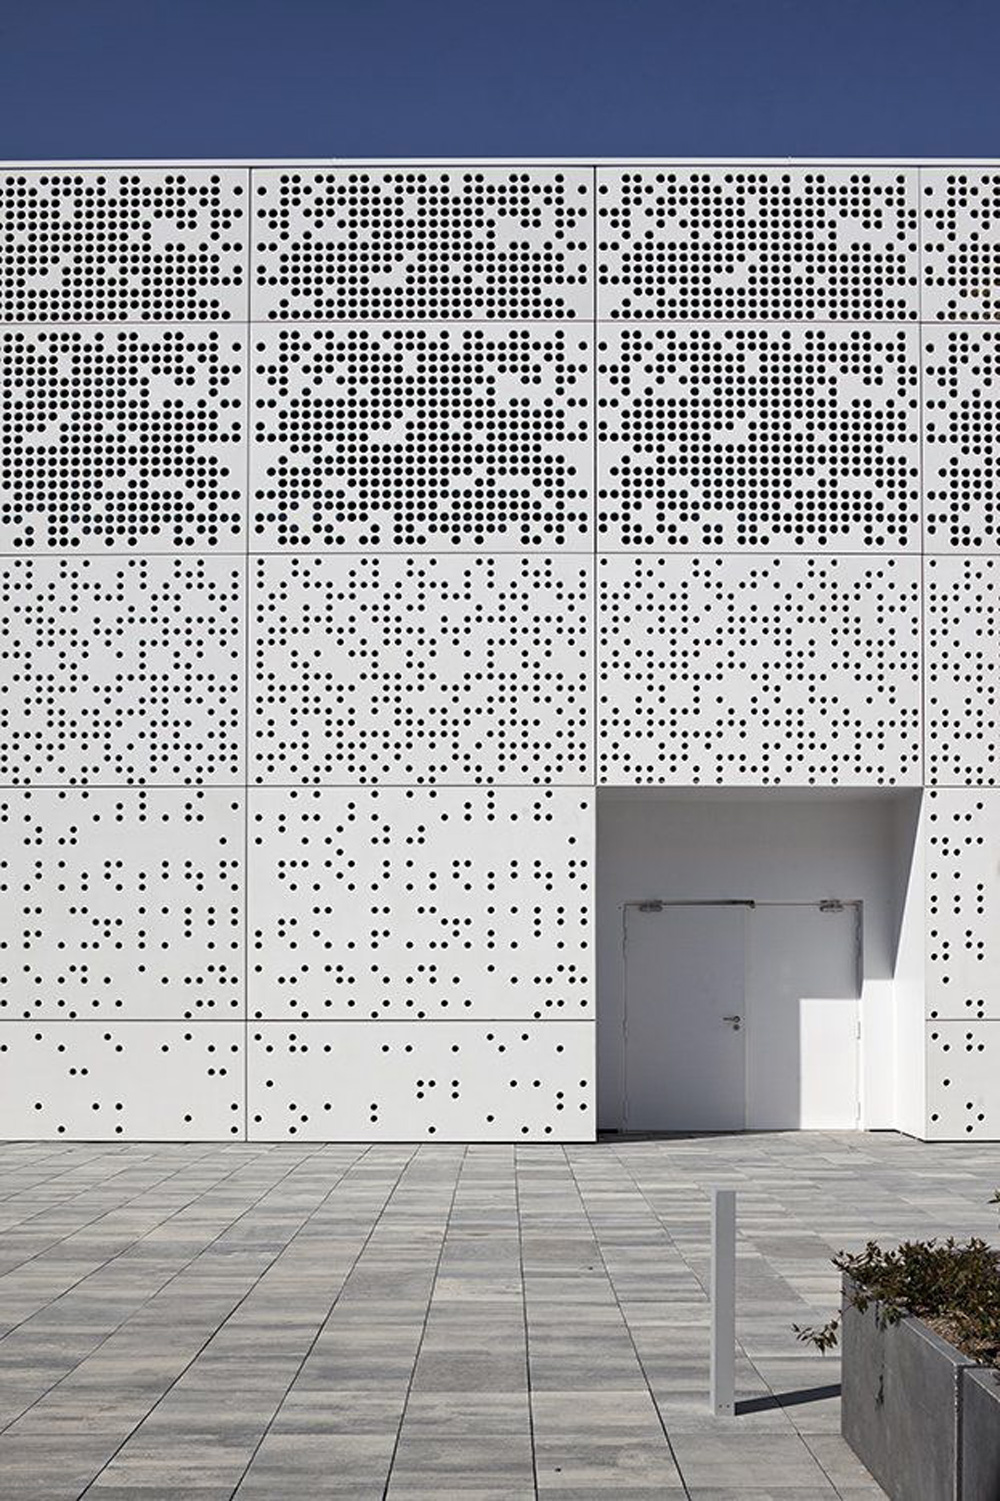 Oracle, Fox, Sunday, Sanctuary, First, Impressions, Building, Exteriors, White